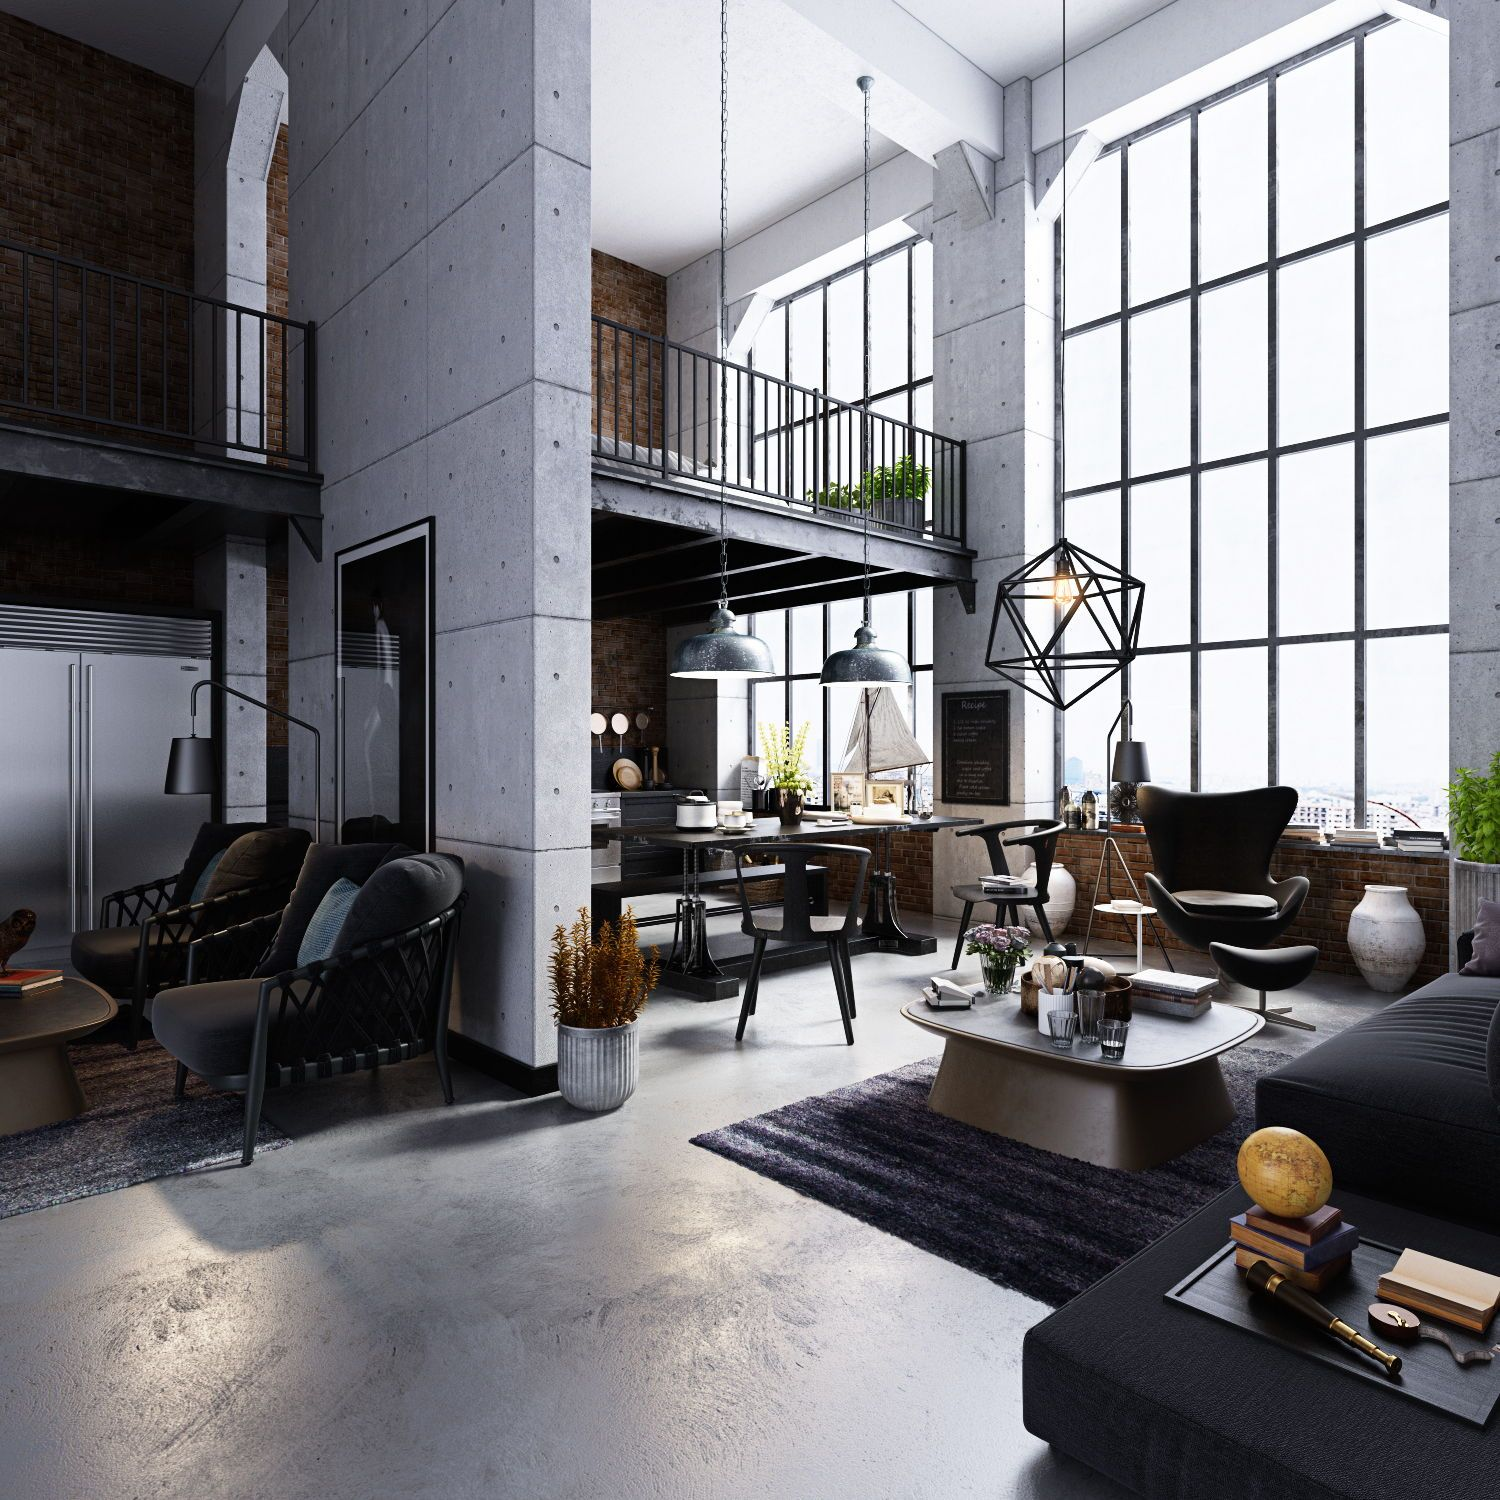 Beautiful Modern Loft With Concrete Floors Steel Windows Iron Railings And All Of The Makings Of An I Industrial Style Living Room Loft Design Loft Interiors